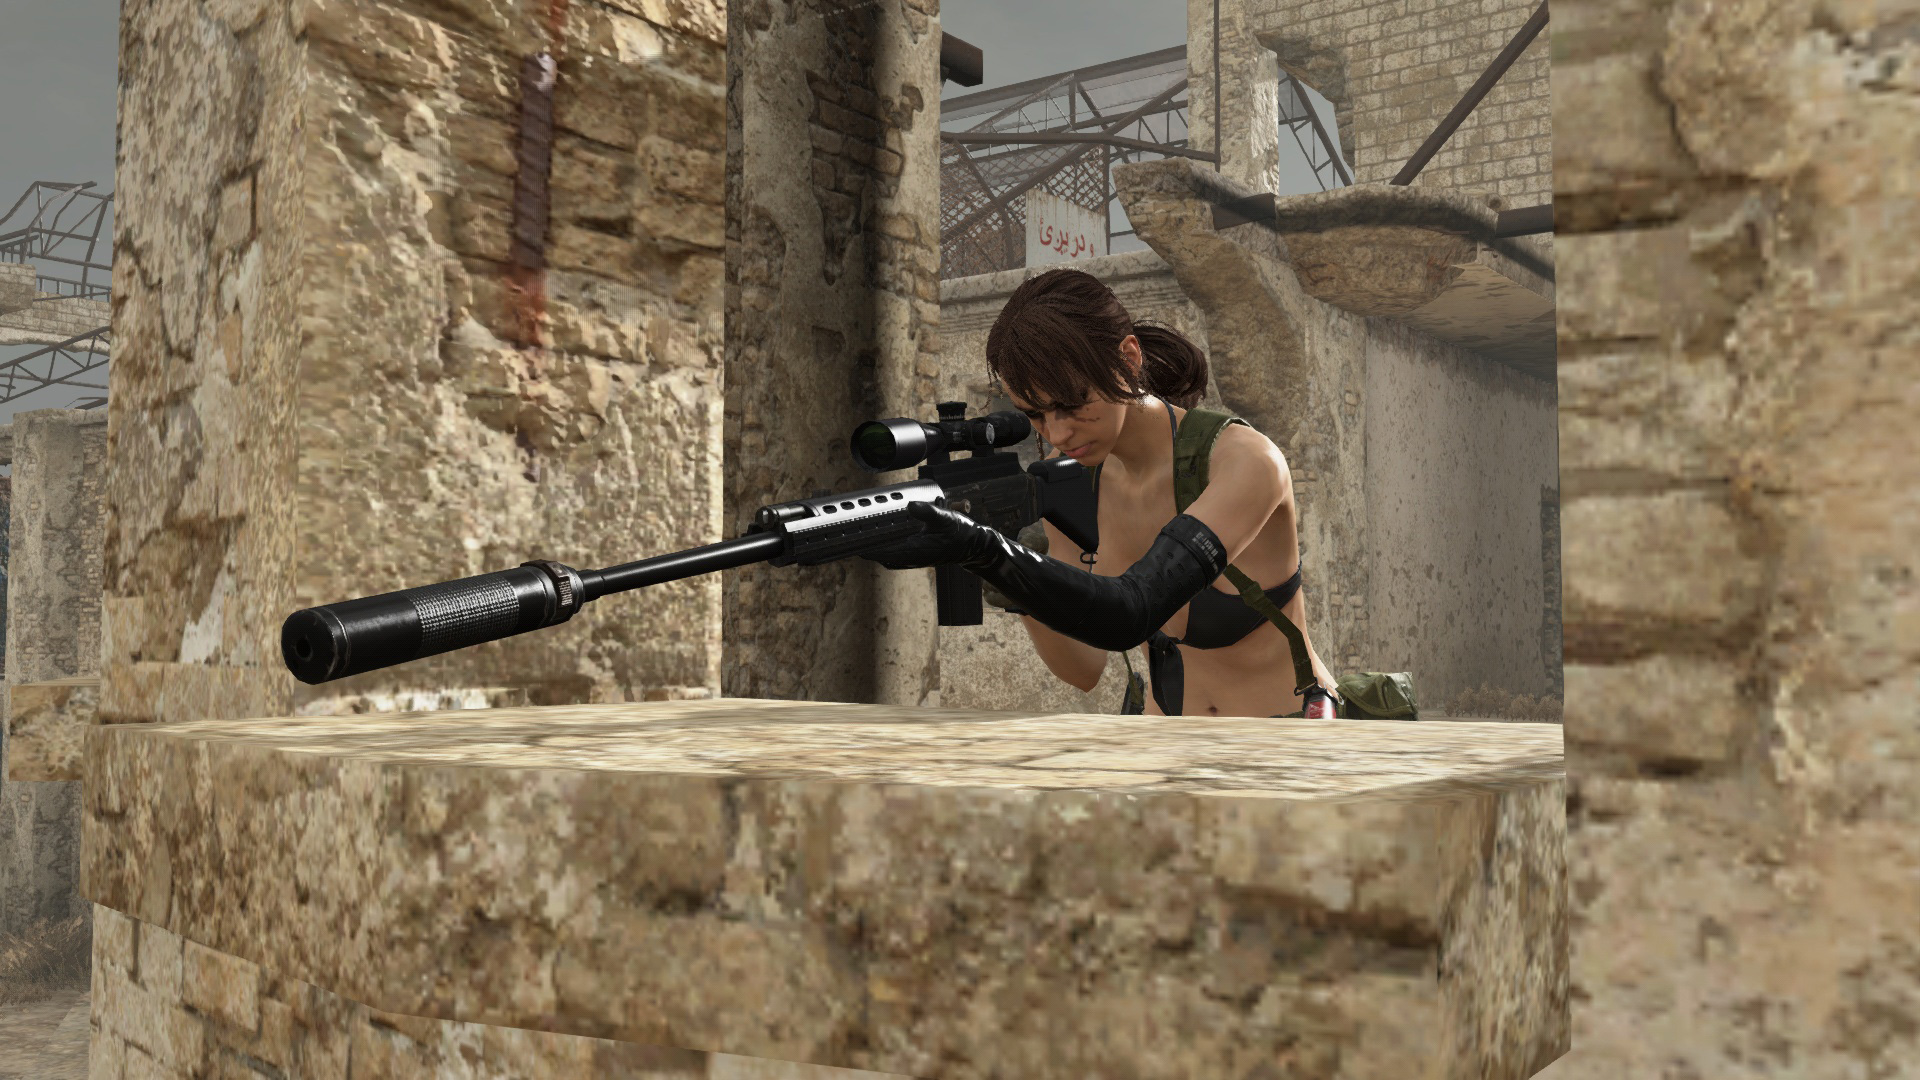 Metal-Gear-Online-DLC-Quiet-2